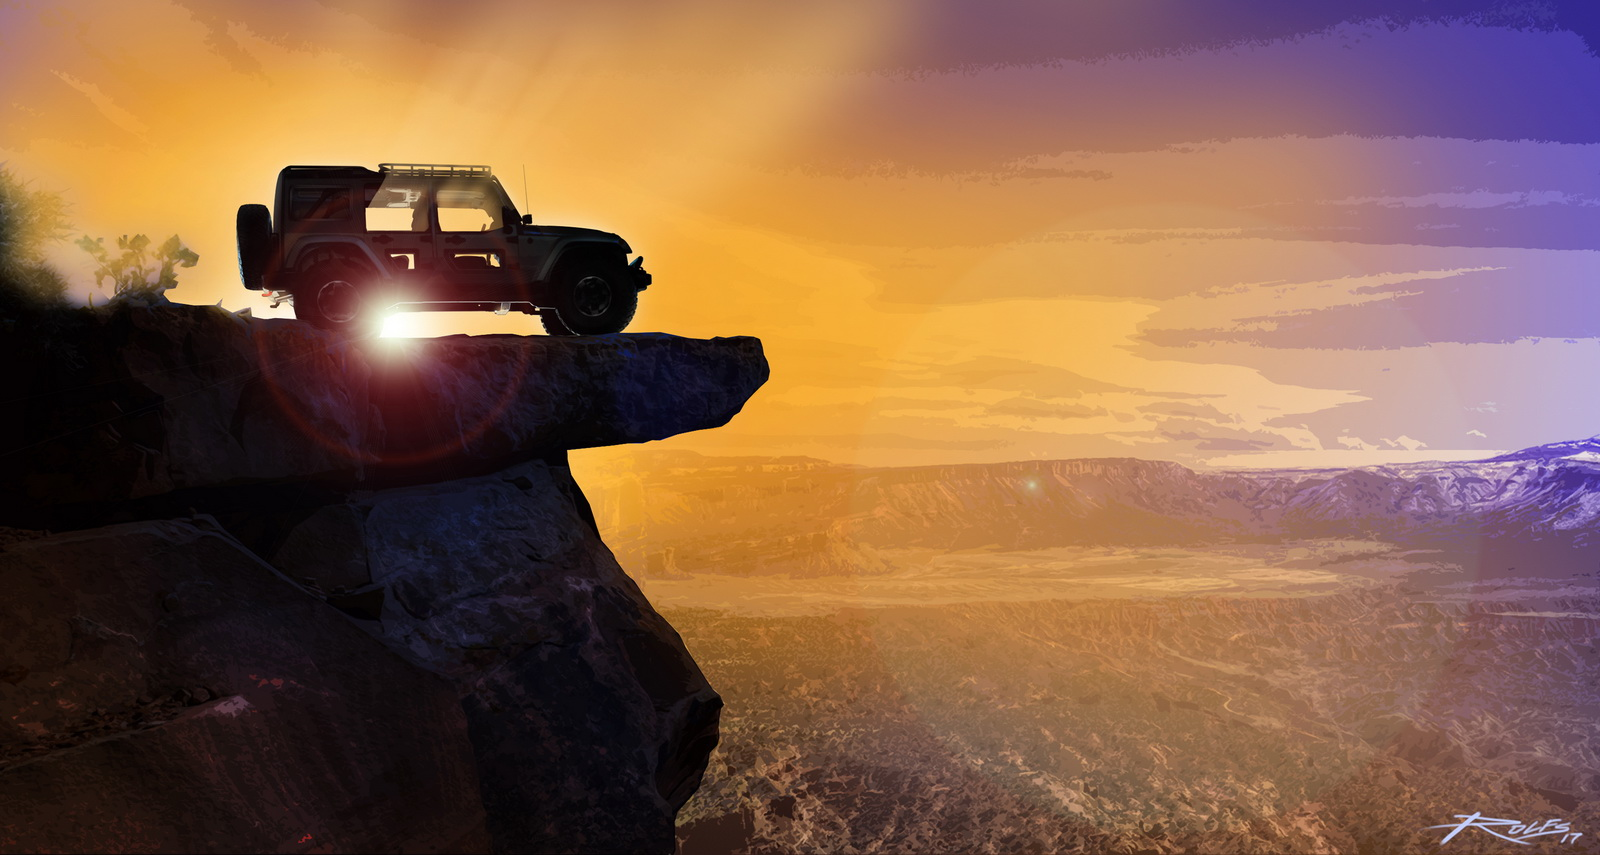 The Jeep® Switchback is one of several new concepts the Jeep® and Mopar brands have created for the 51st Easter Jeep Safari in Moab, Utah, next month.